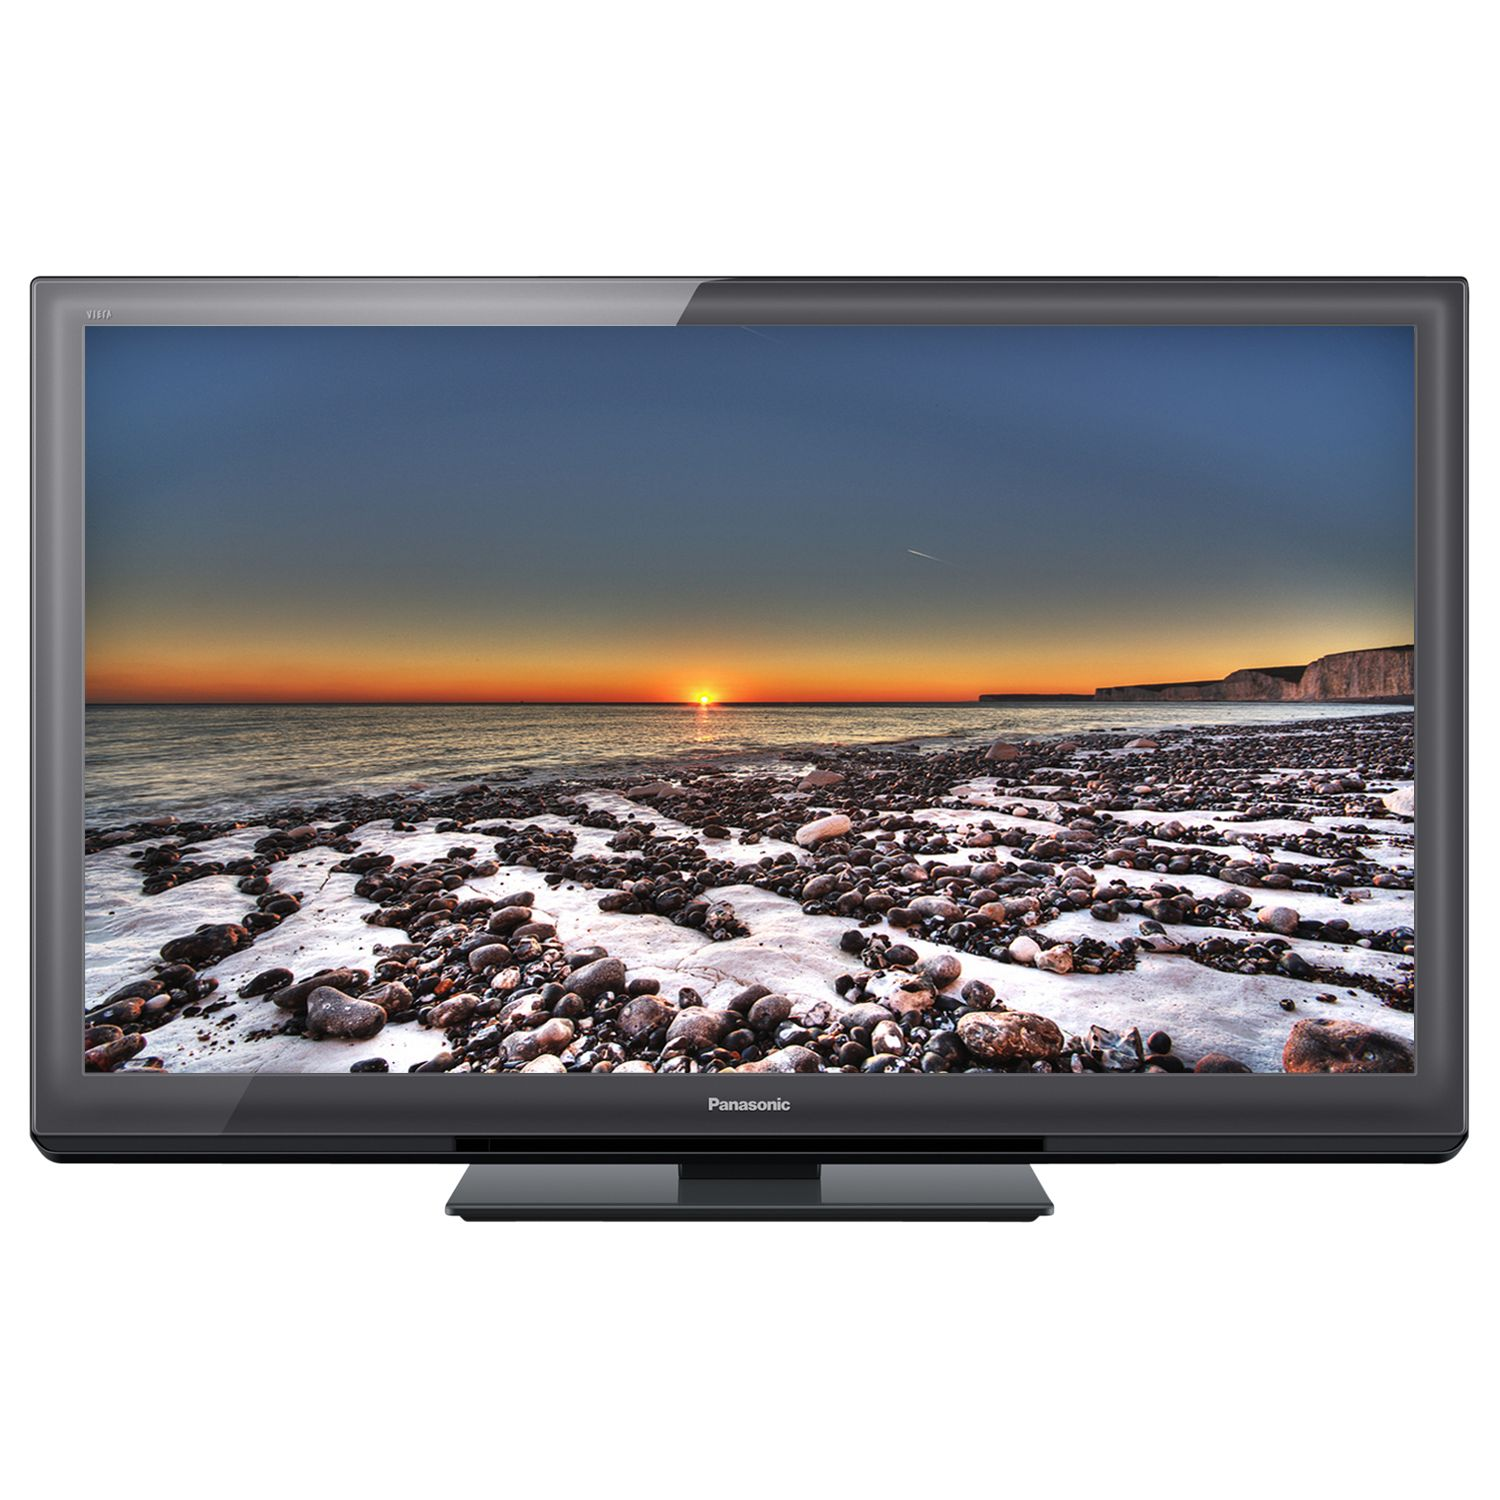 Panasonic Viera TX P46ST30 Plasma HD 1080p 3D TV 46 Inch with Built in Freeview HD